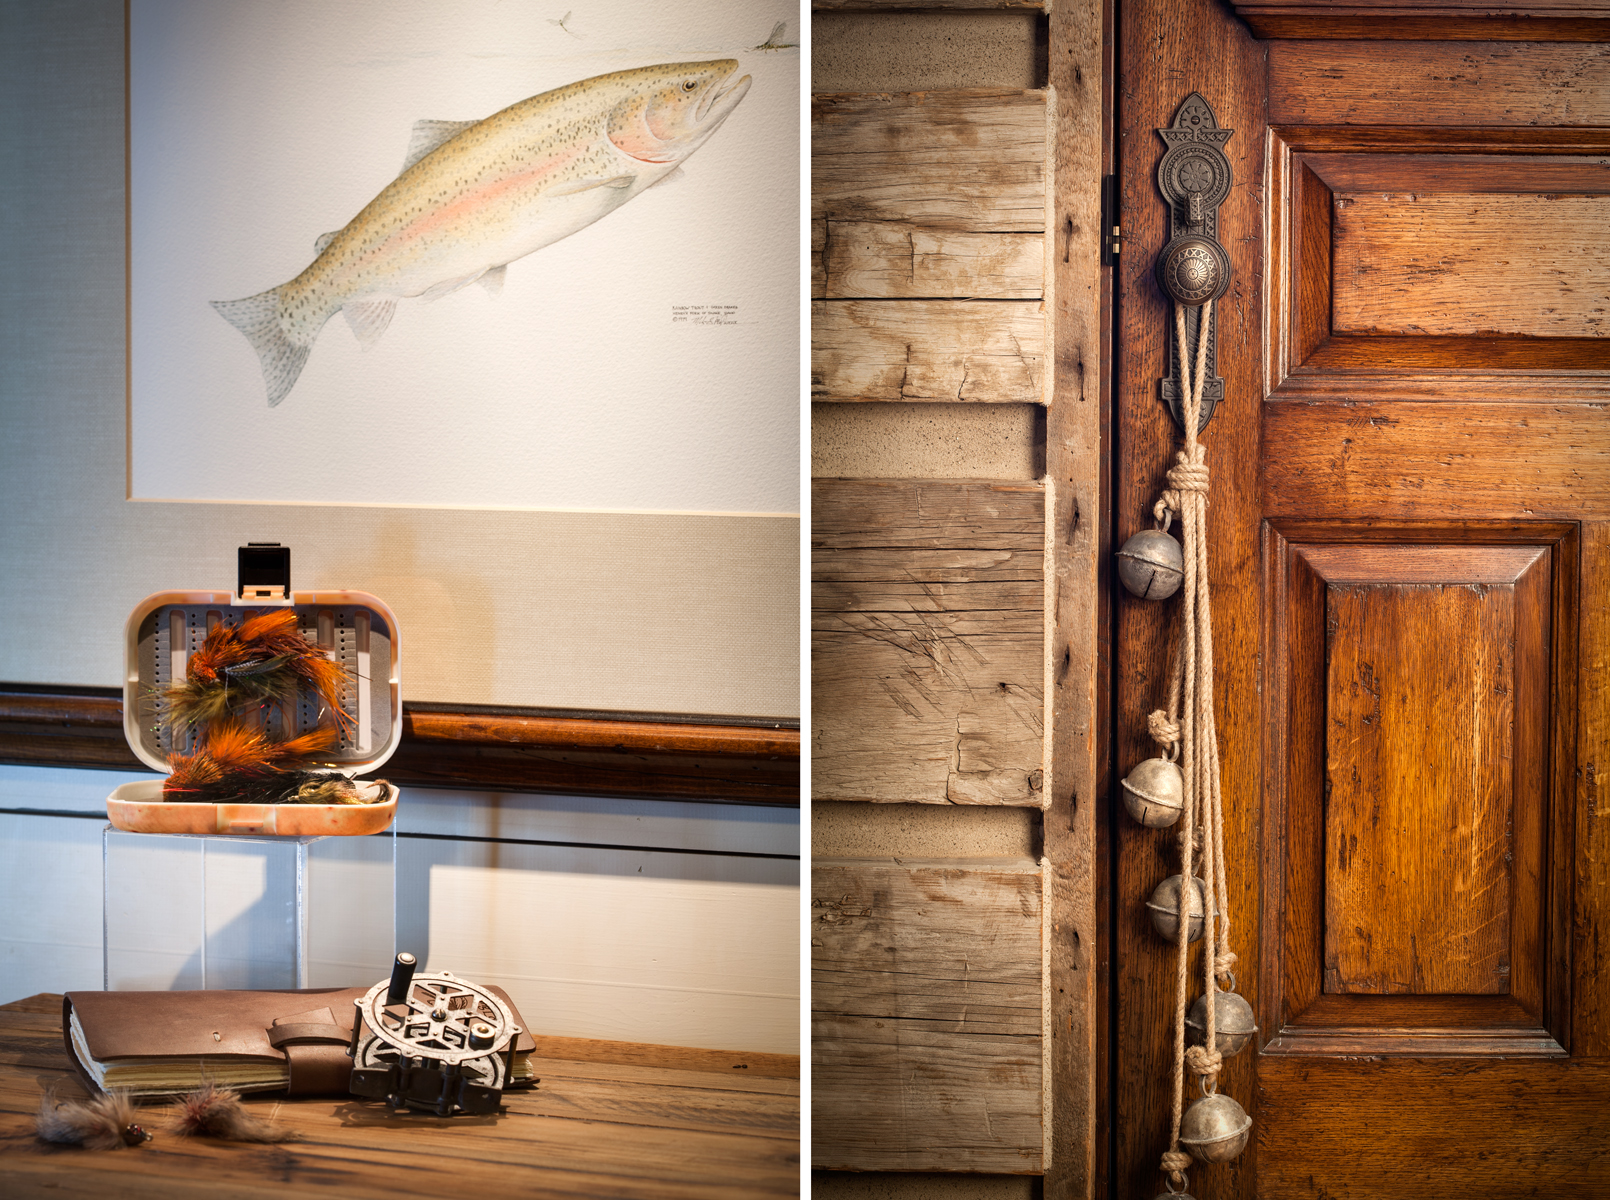 This diptic features two vignettes from a rustic log home made of reclaimed timber eat of Park City, UT. The first photo is a close up of an antique fly fishing reel on top of a wooden bureau with a hand sketched picture of a trout behind. The second is of a string of antique slay bells hanging from a wooden door .